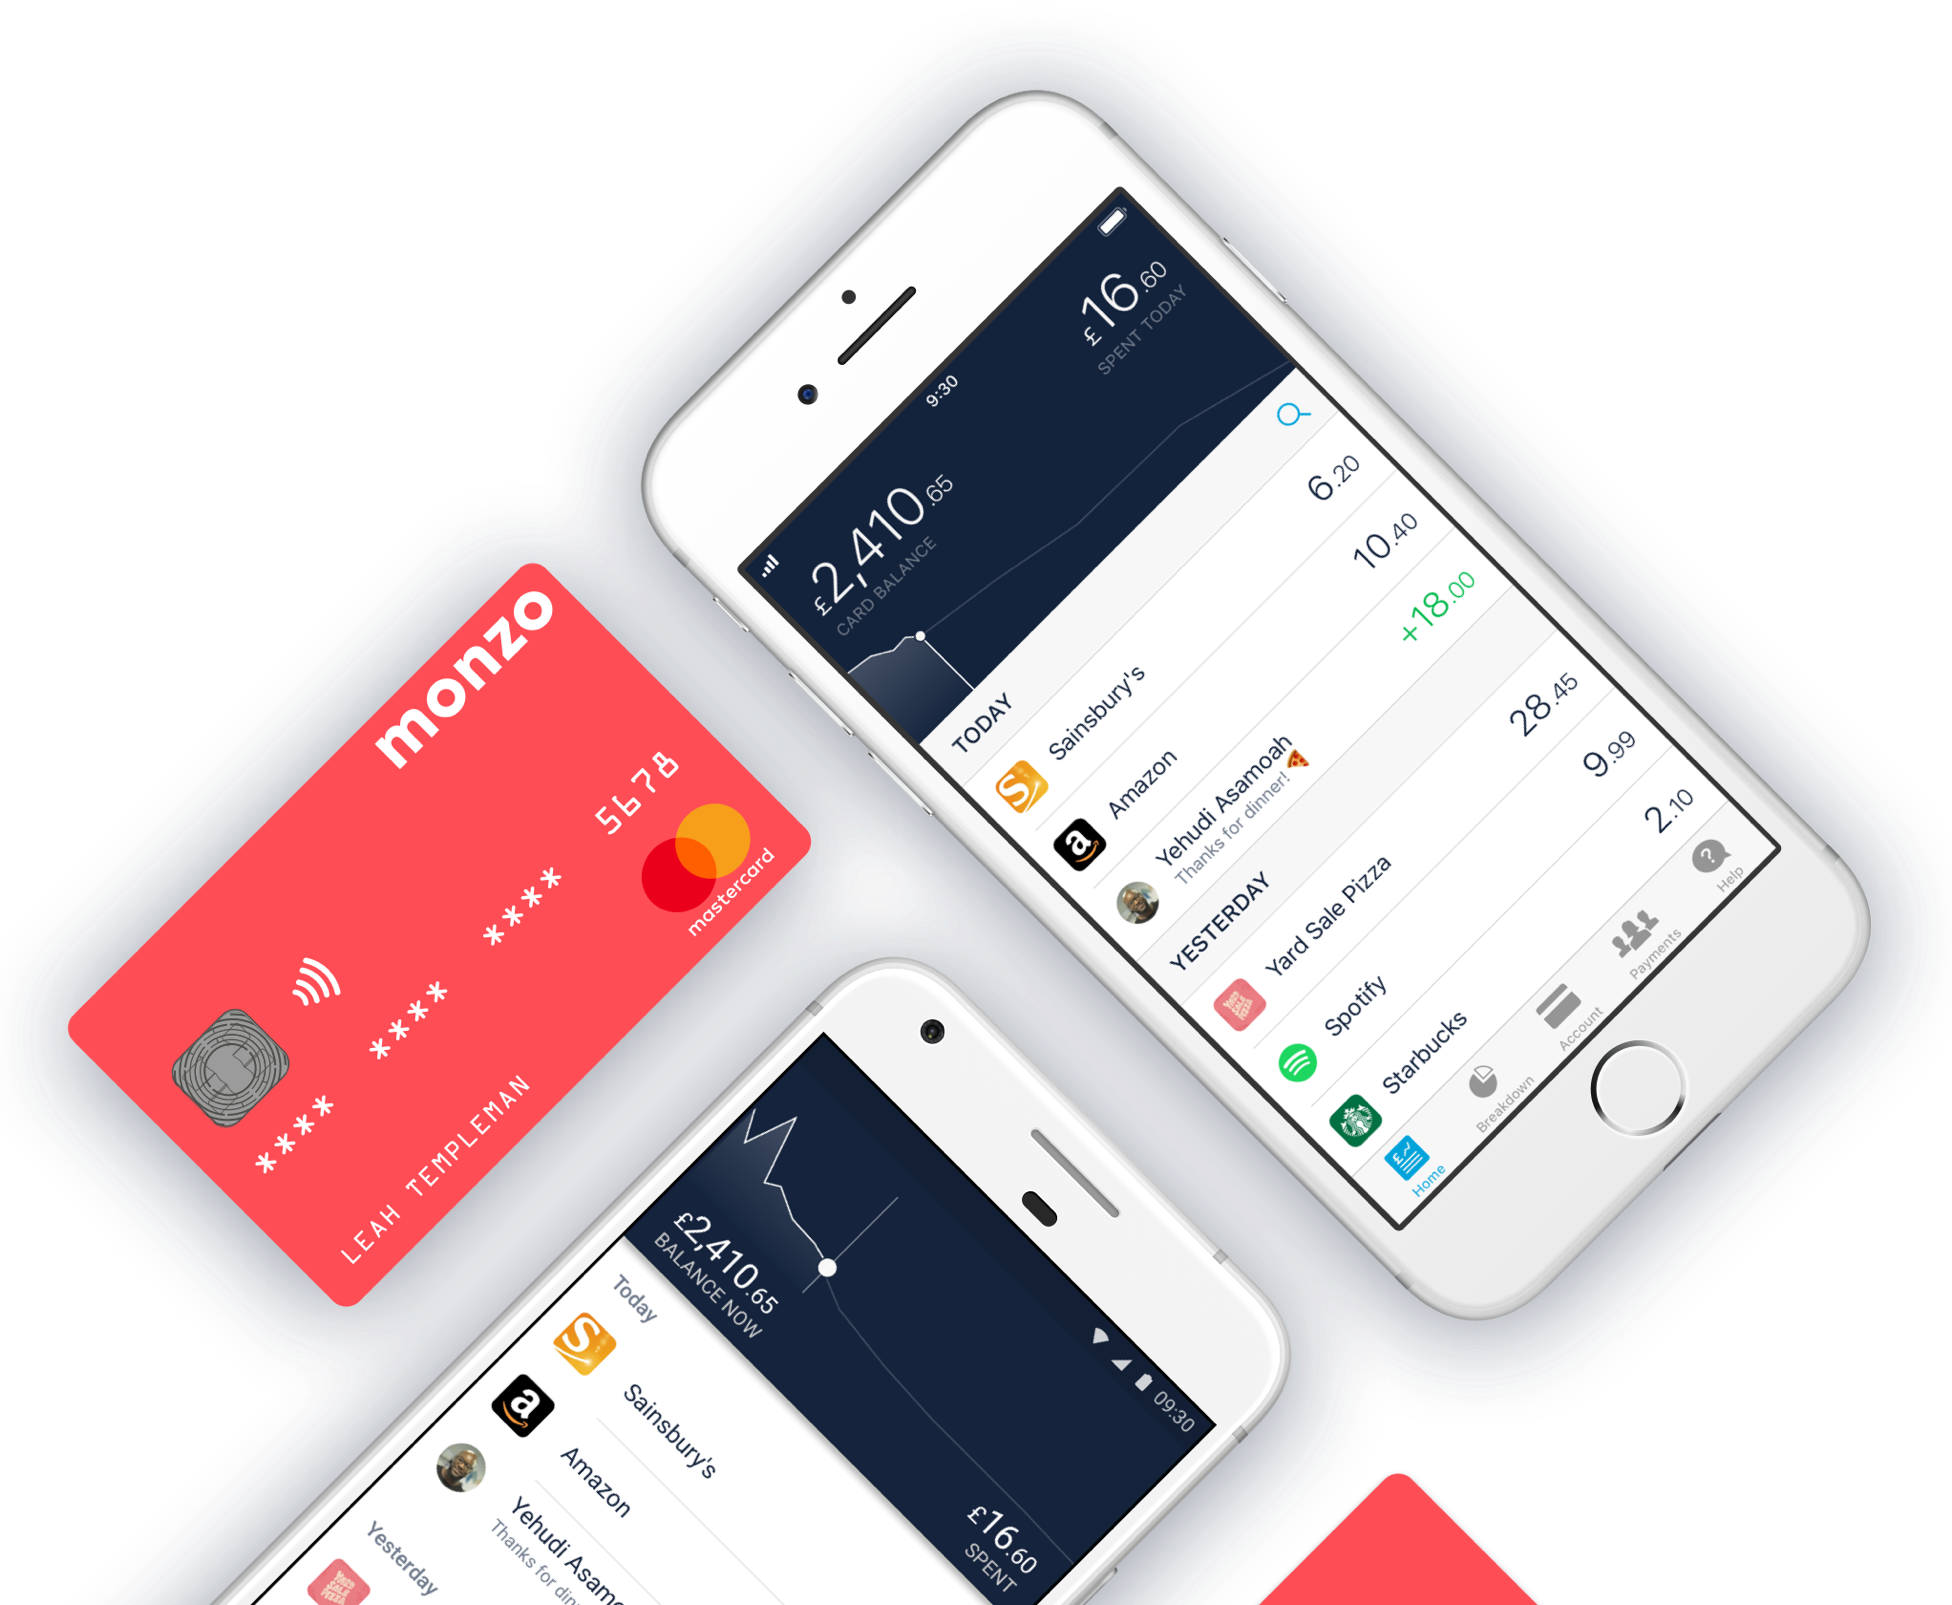 出典: https://tech.eu/brief/chasing-revolut-london-based-digital-bank-monzo-poised-to-raise-150-million-at-a-1-5-billion-valuation/